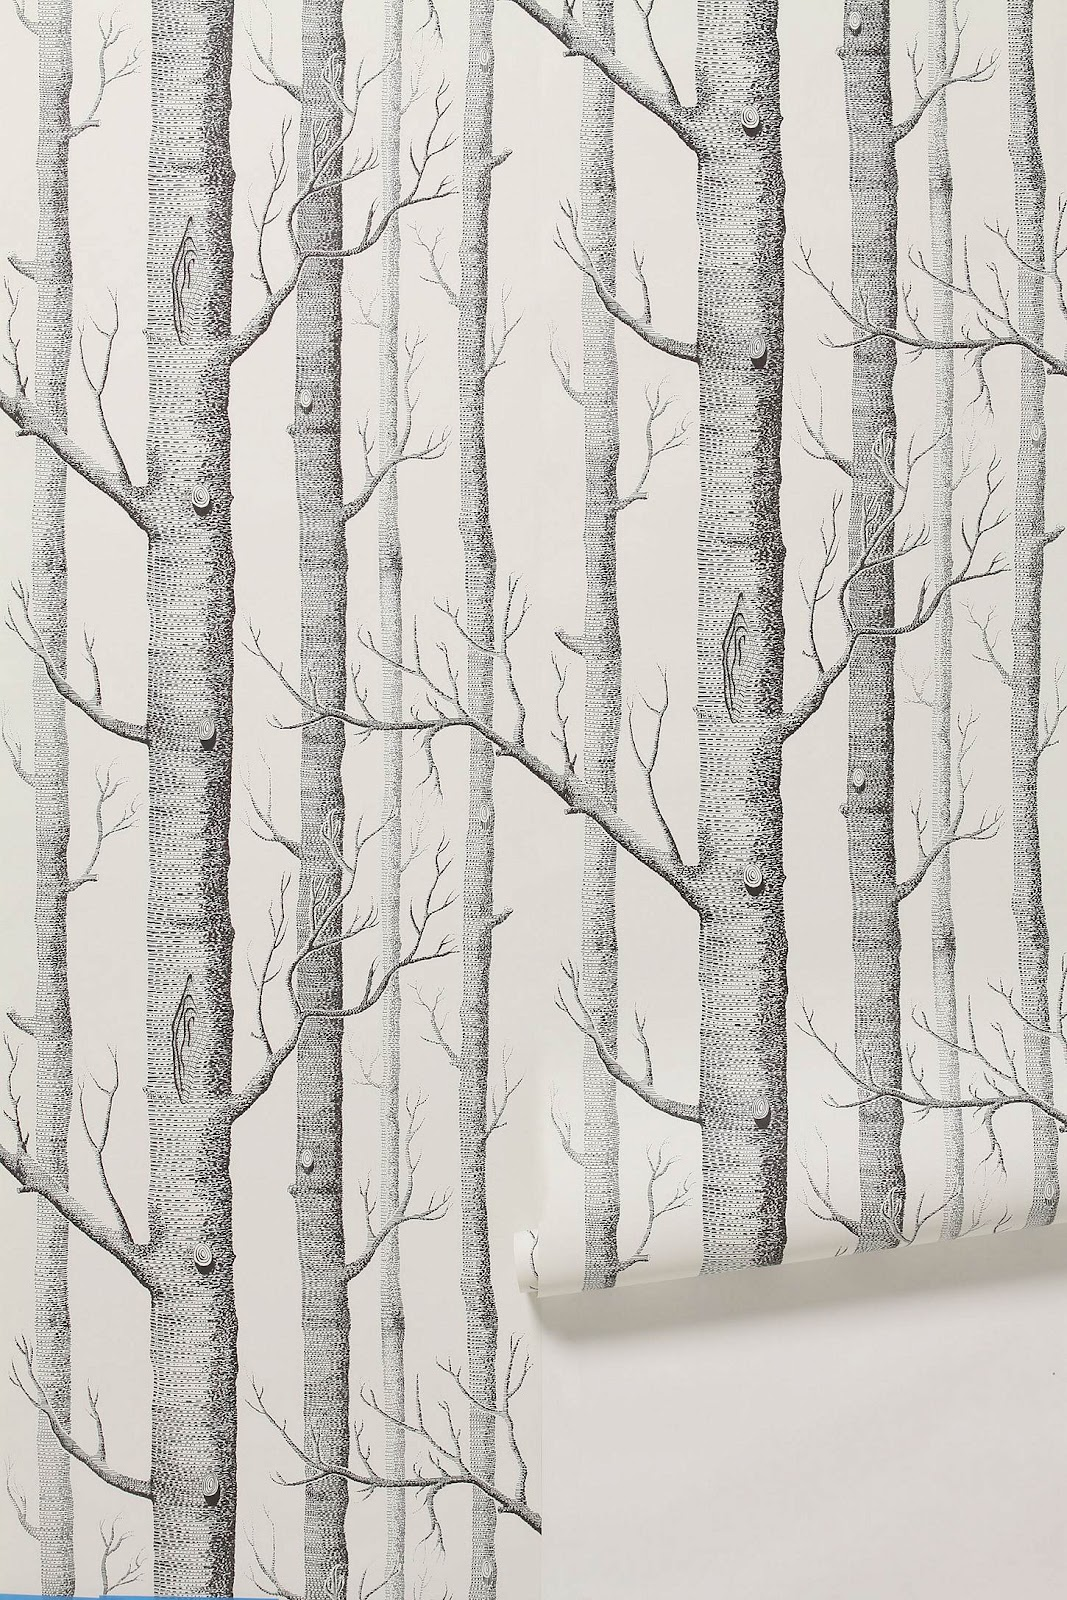 http://1.bp.blogspot.com/-2f9LzAM_SE0/T1kOUaCx9FI/AAAAAAAABJI/yfkpjtAWLfg/s1600/anthropologie+wood+trees+forest+wallpaper+black+and+white+gray+modern.jpeg